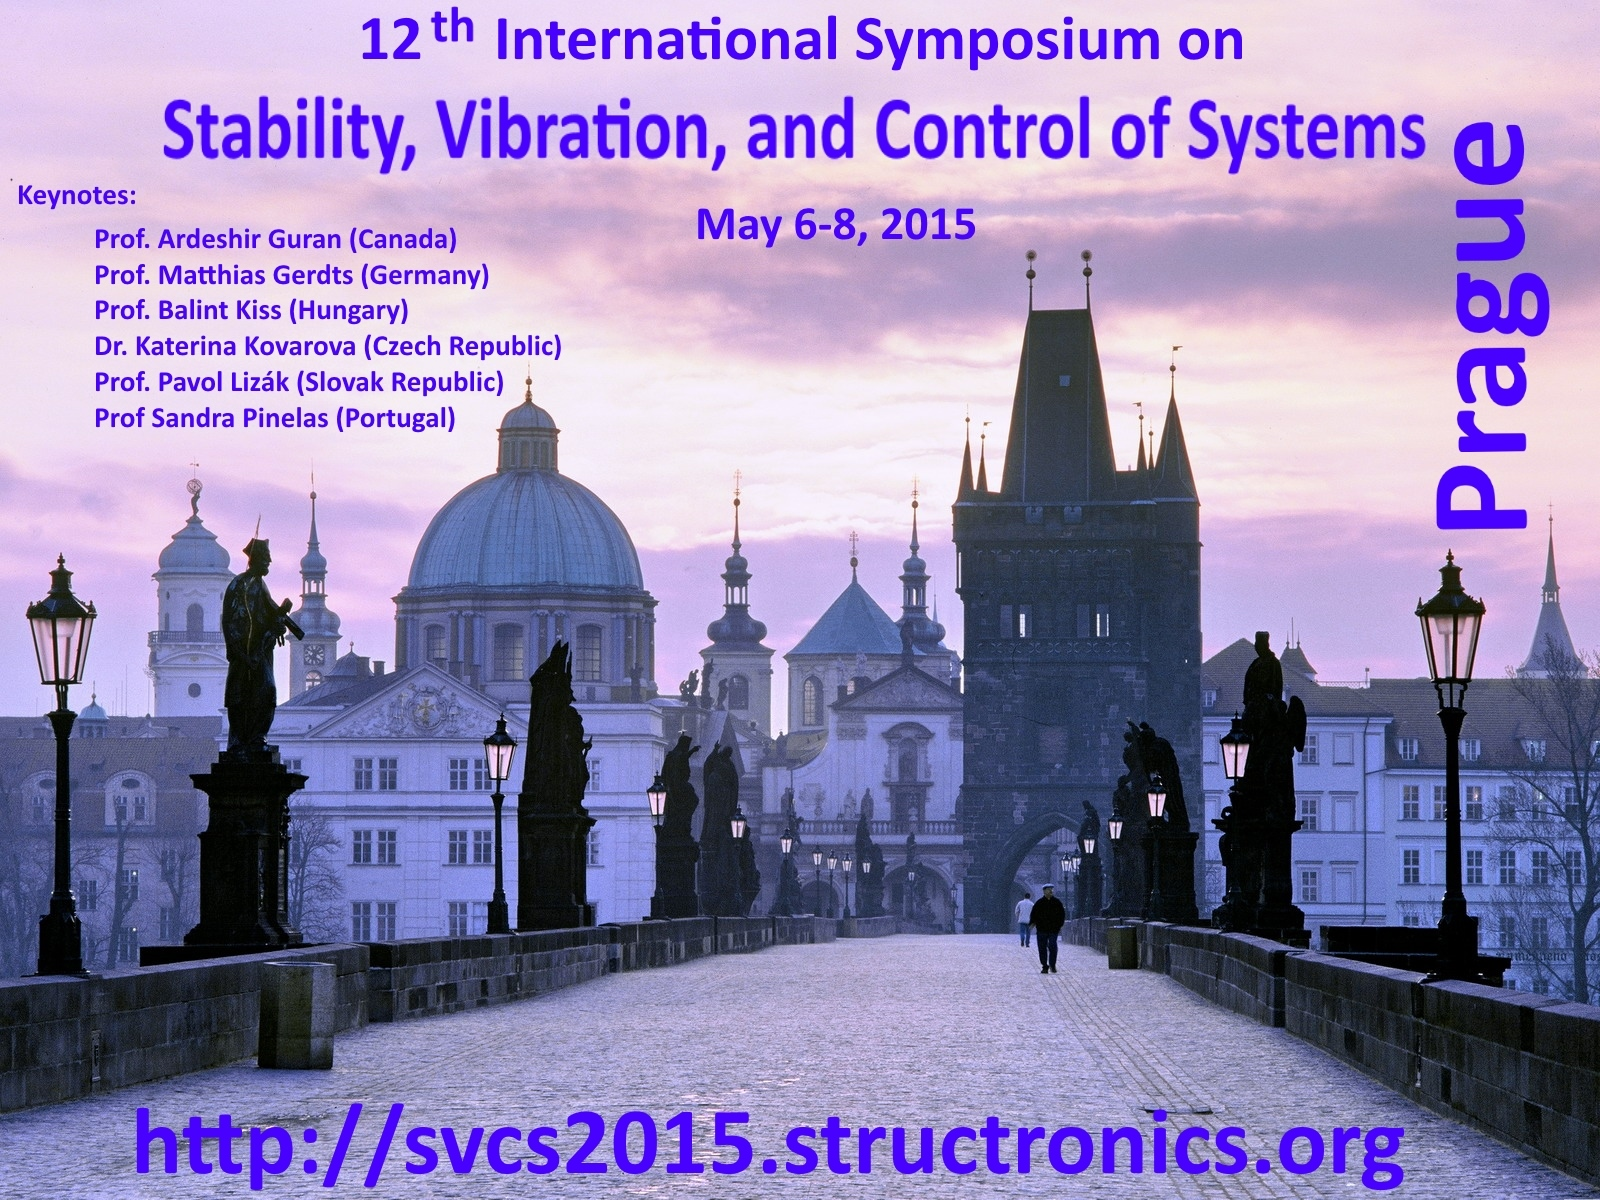 SVCS2015 Charles Bridge